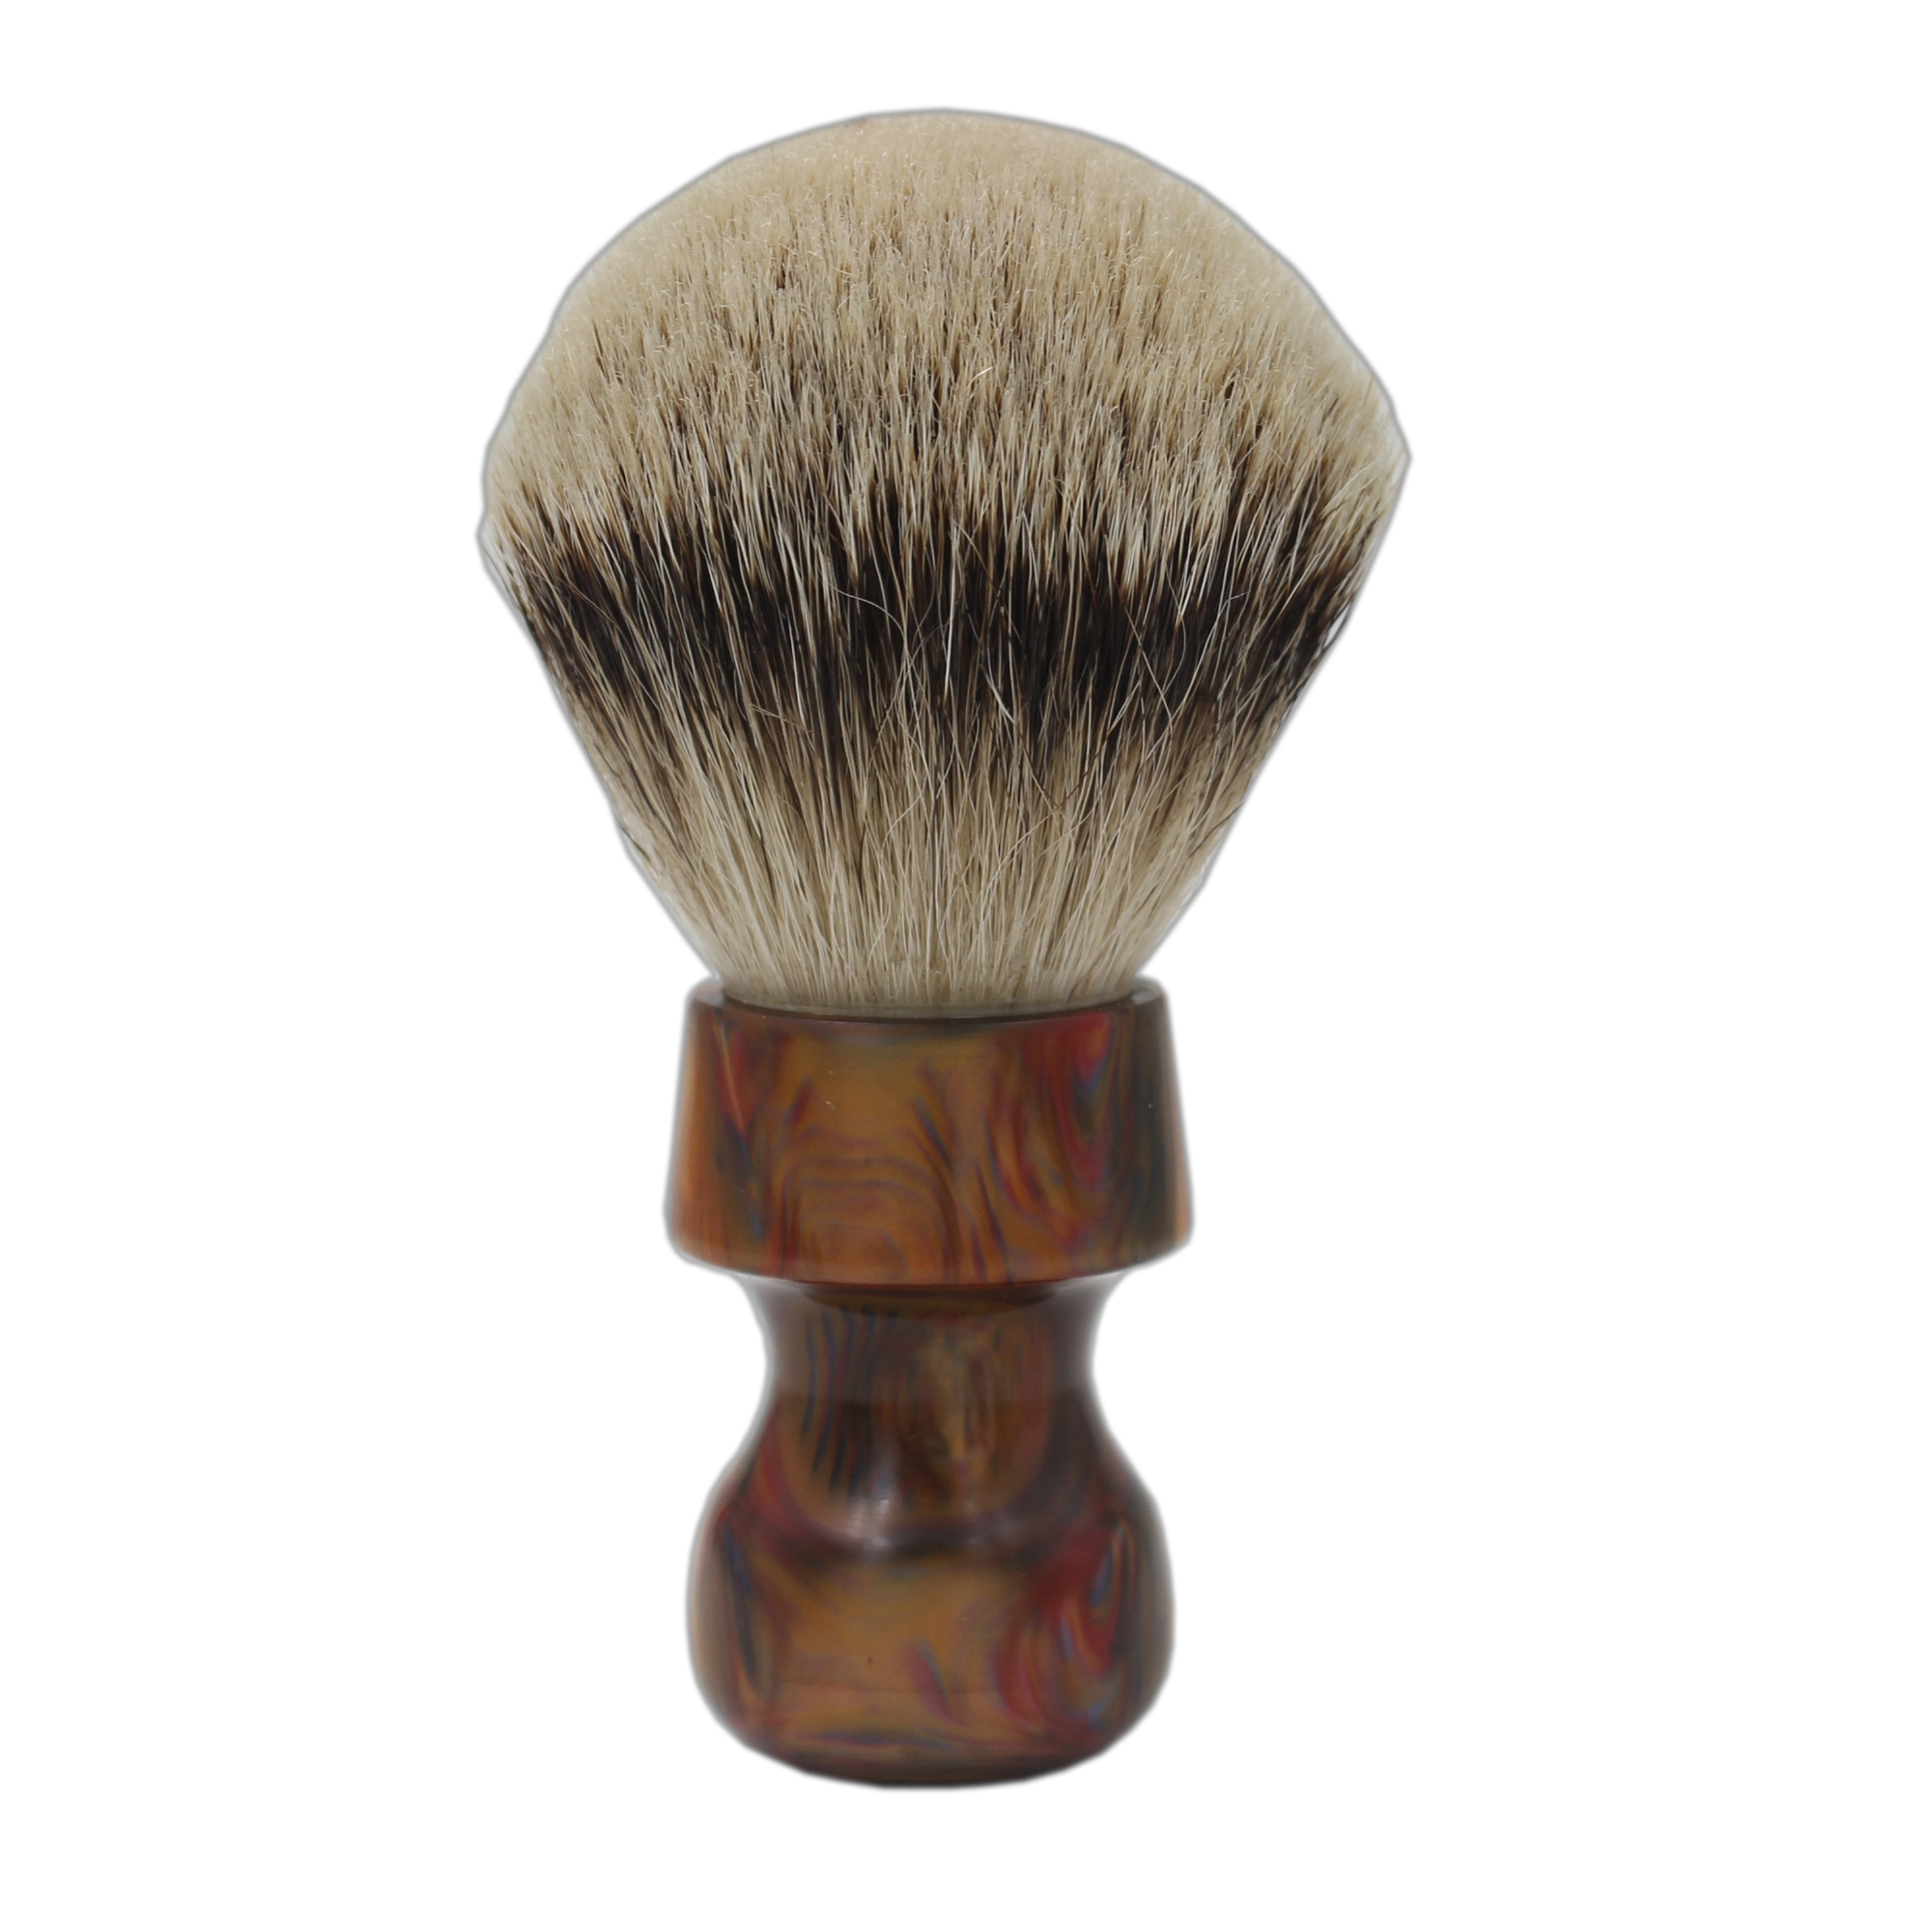 купить 30mm Knot Colorful Resin Handle Silvertip Badger Hair Shaving Brush for Barber Shave Tool по цене 2651.9 рублей